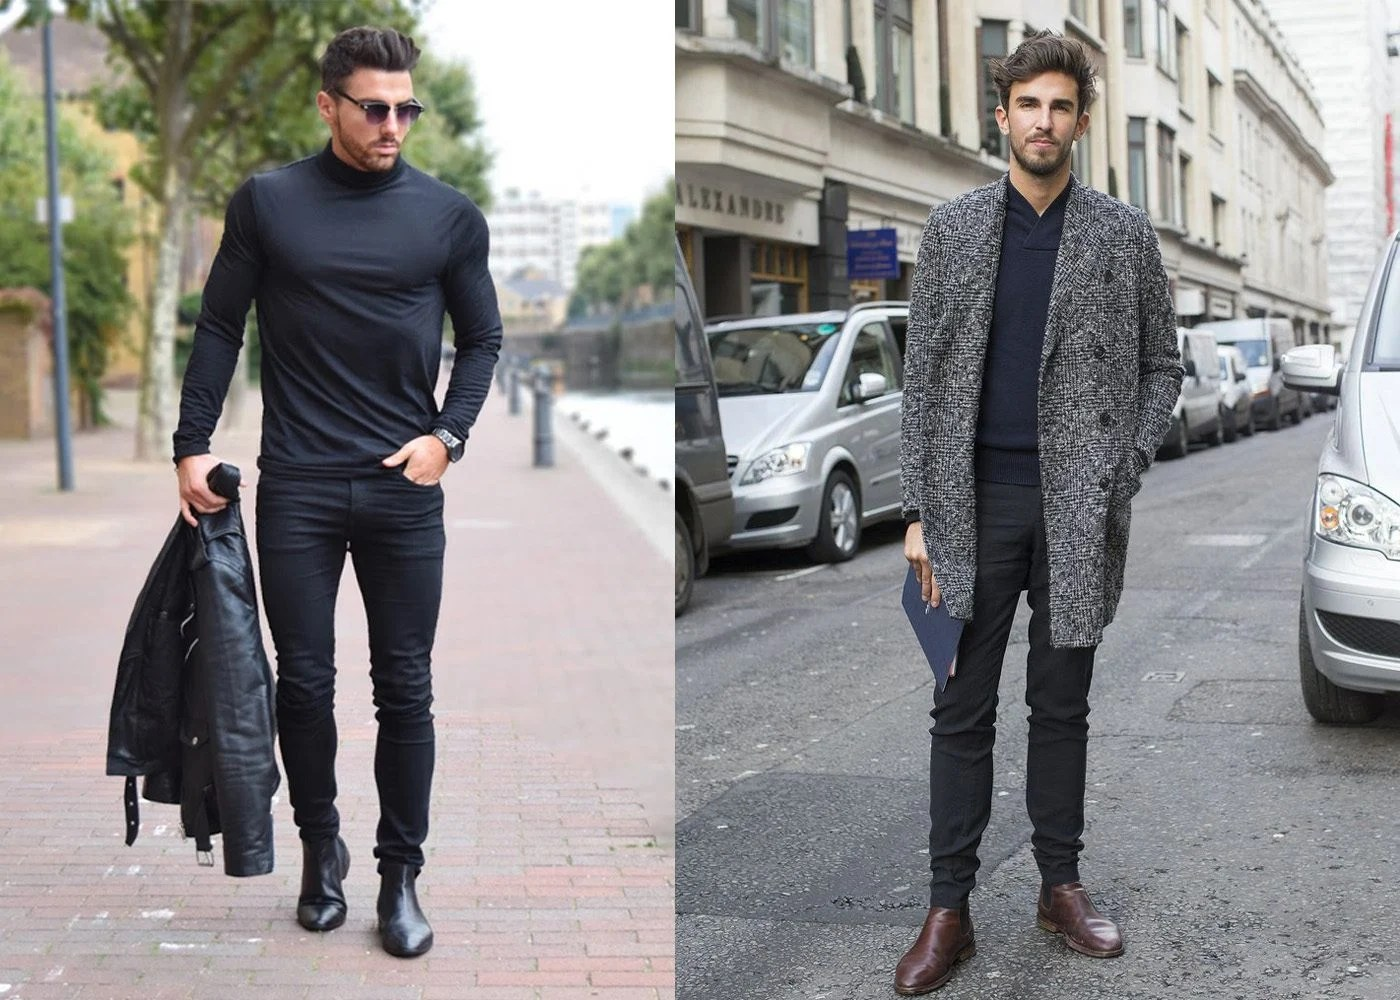 Men's Style With Chelsea Boots